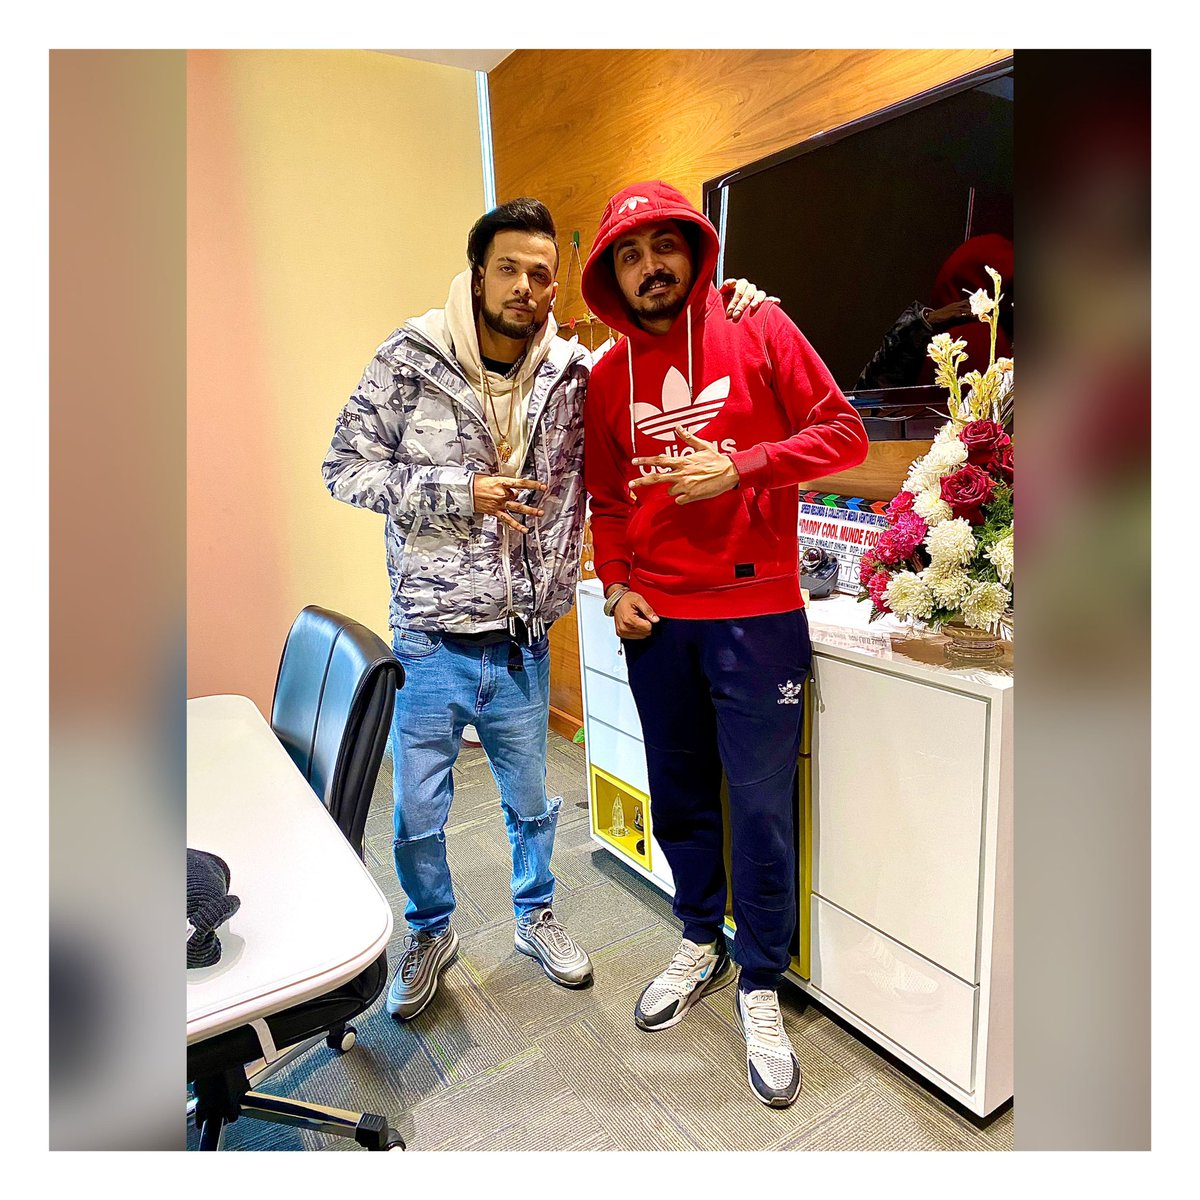 Every person that you meet, knows something you don't : Learn from them🤗 Ikka in the house baby🤟🔥 #ikka #supportikka #rap #rapking #humbleperson